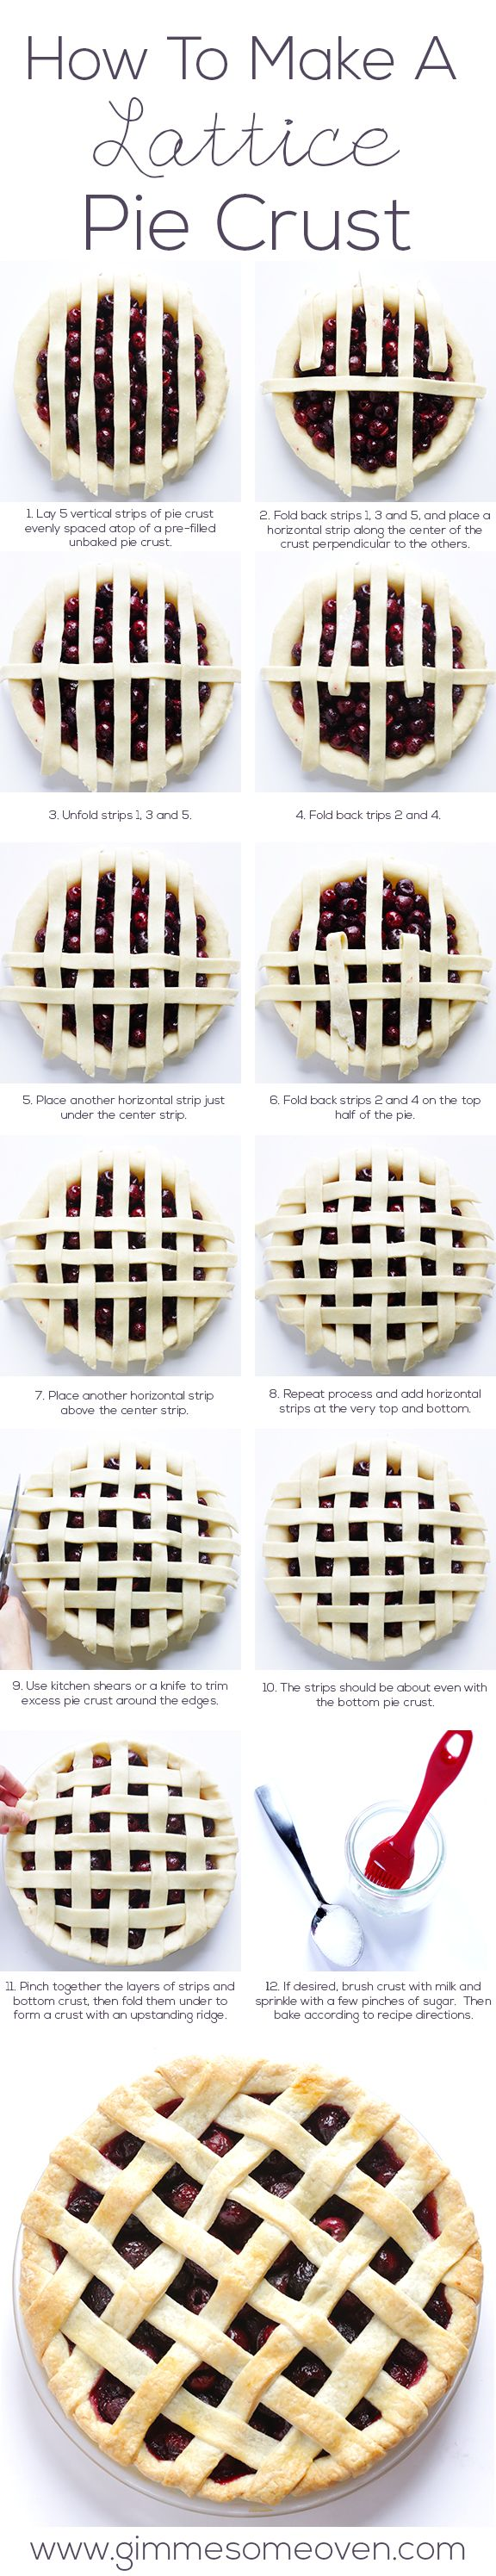 How To Make A Lattice Pie Crust -- it is SO much easier than you may think! | gimmesomeoven.com